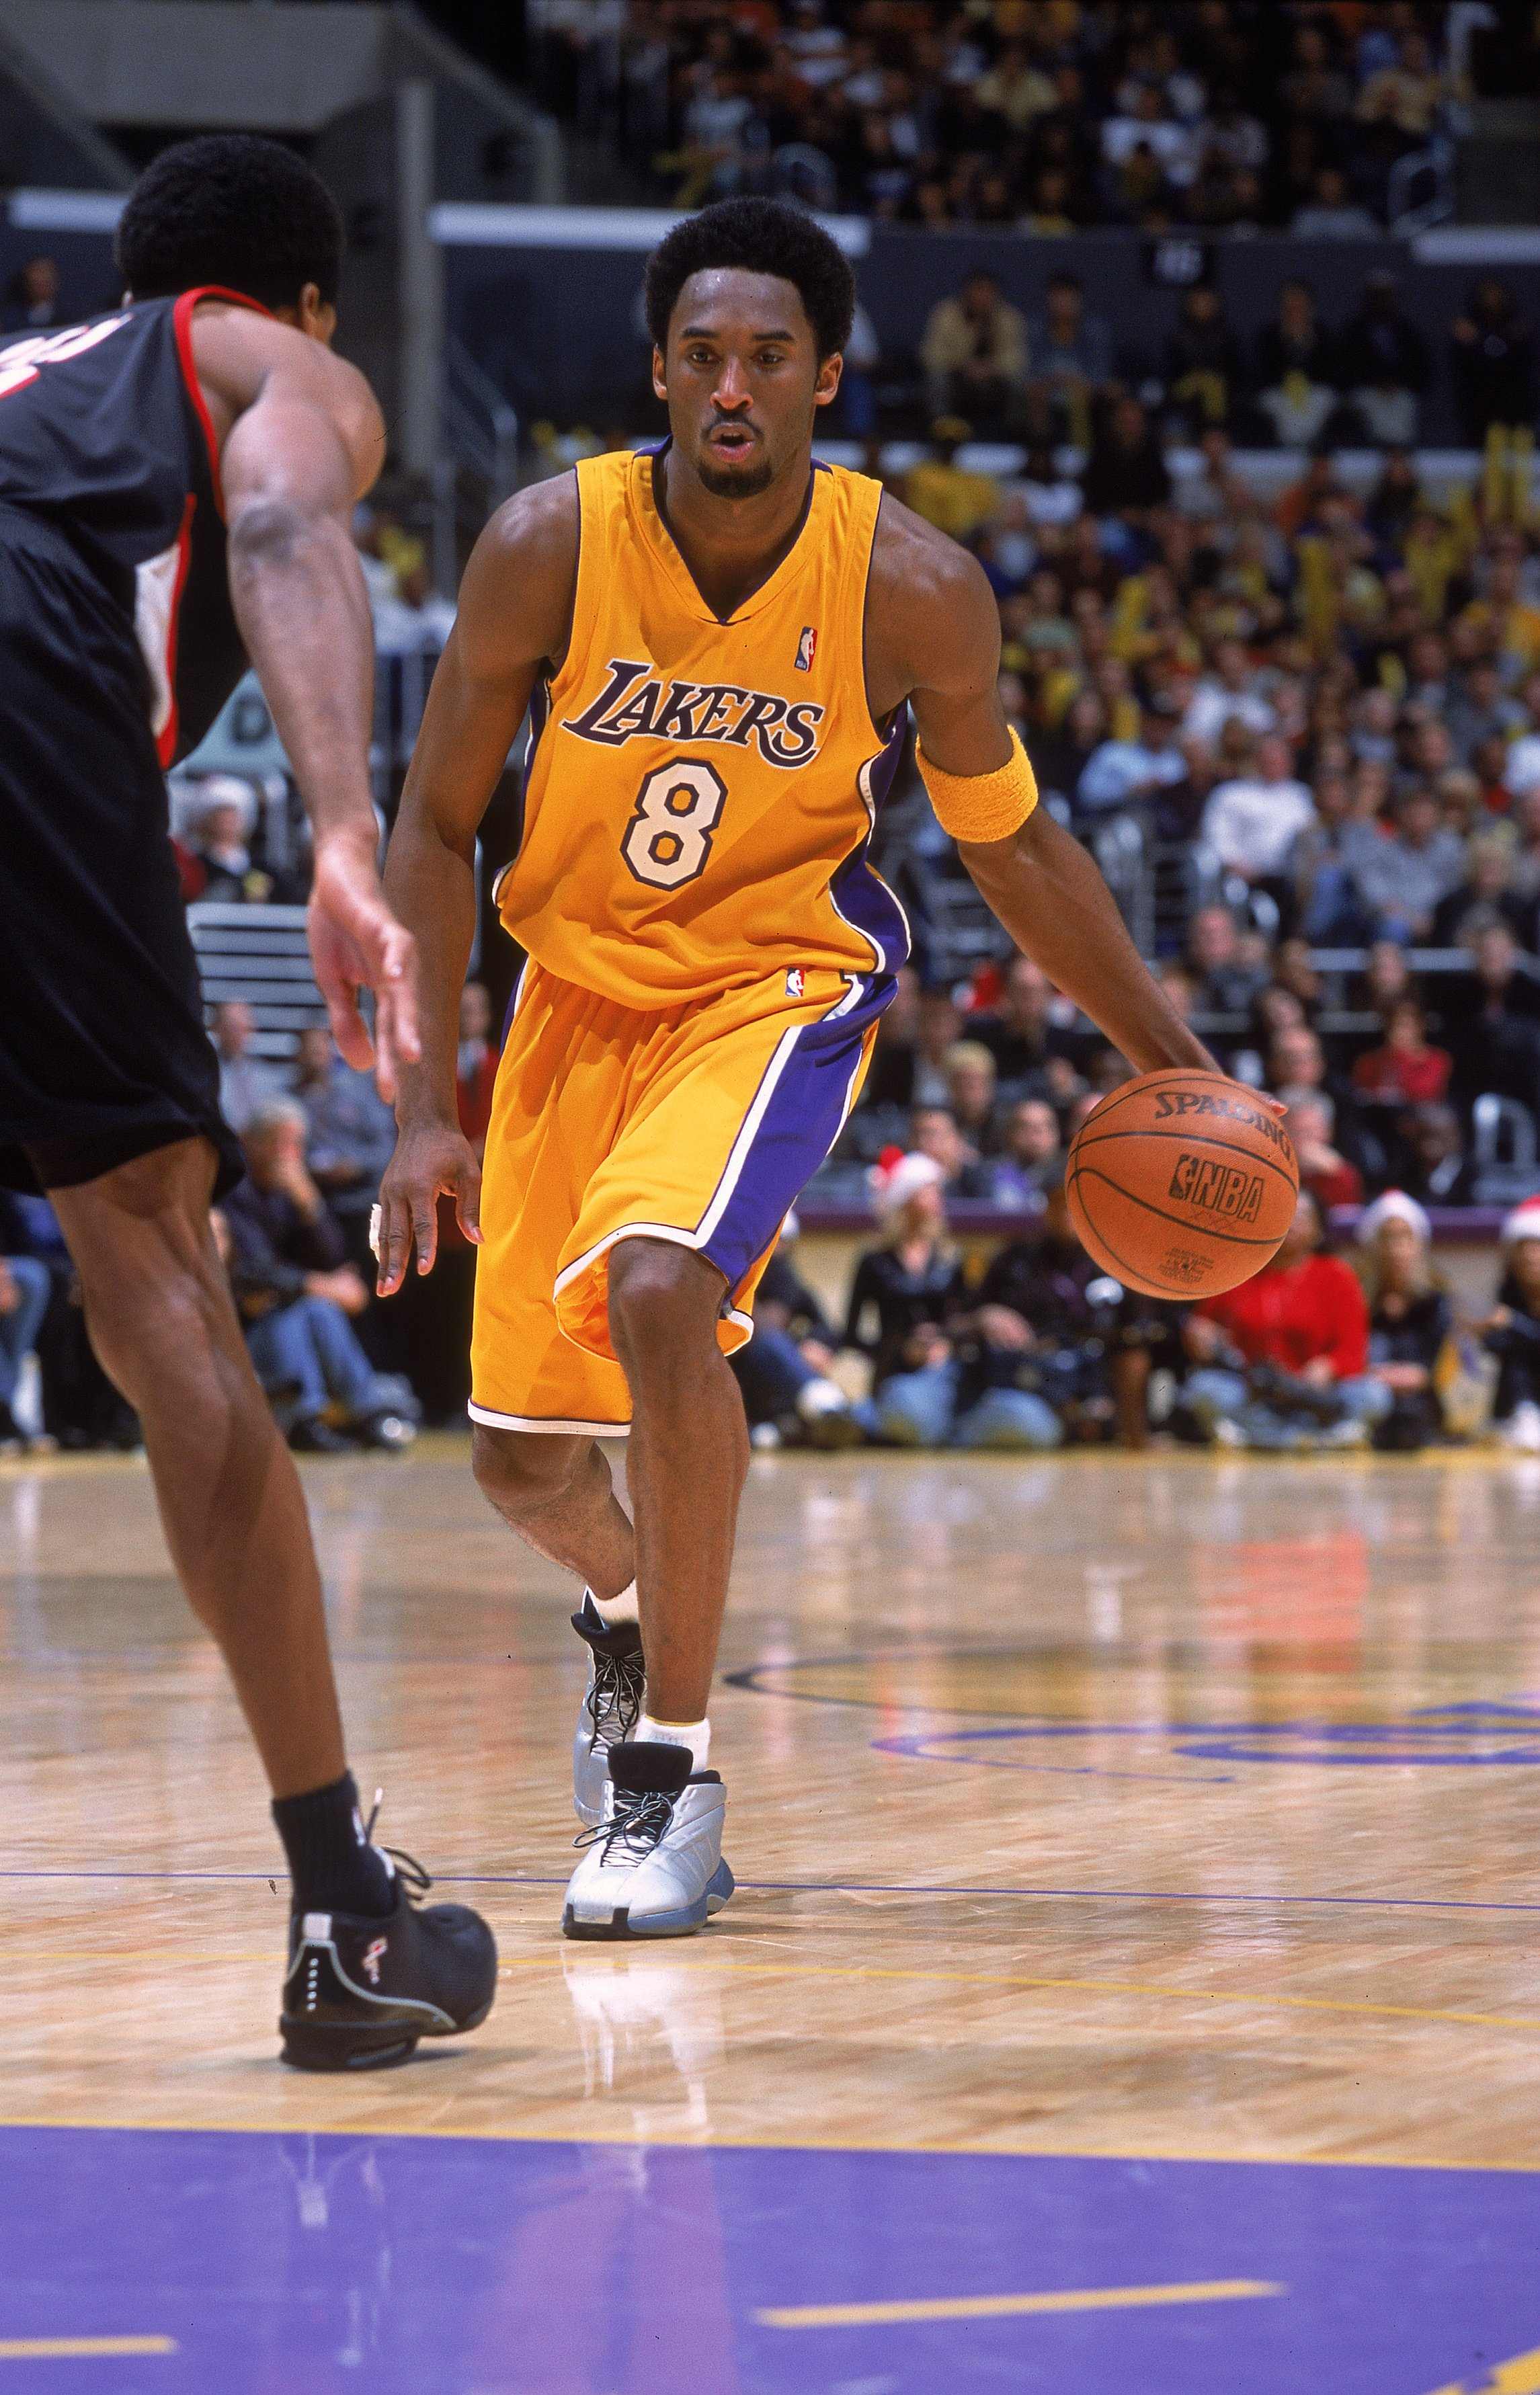 25 Dec 2000:  Kobe Bryant #8 of the Los Angeles Lakers moves with the ball during the game against the Portland Trail Blazers at the STAPLES Center in Los Angeles, California. The Trail Blazers defeated the Lakers 109-104.   NOTE TO USER: It is expressly